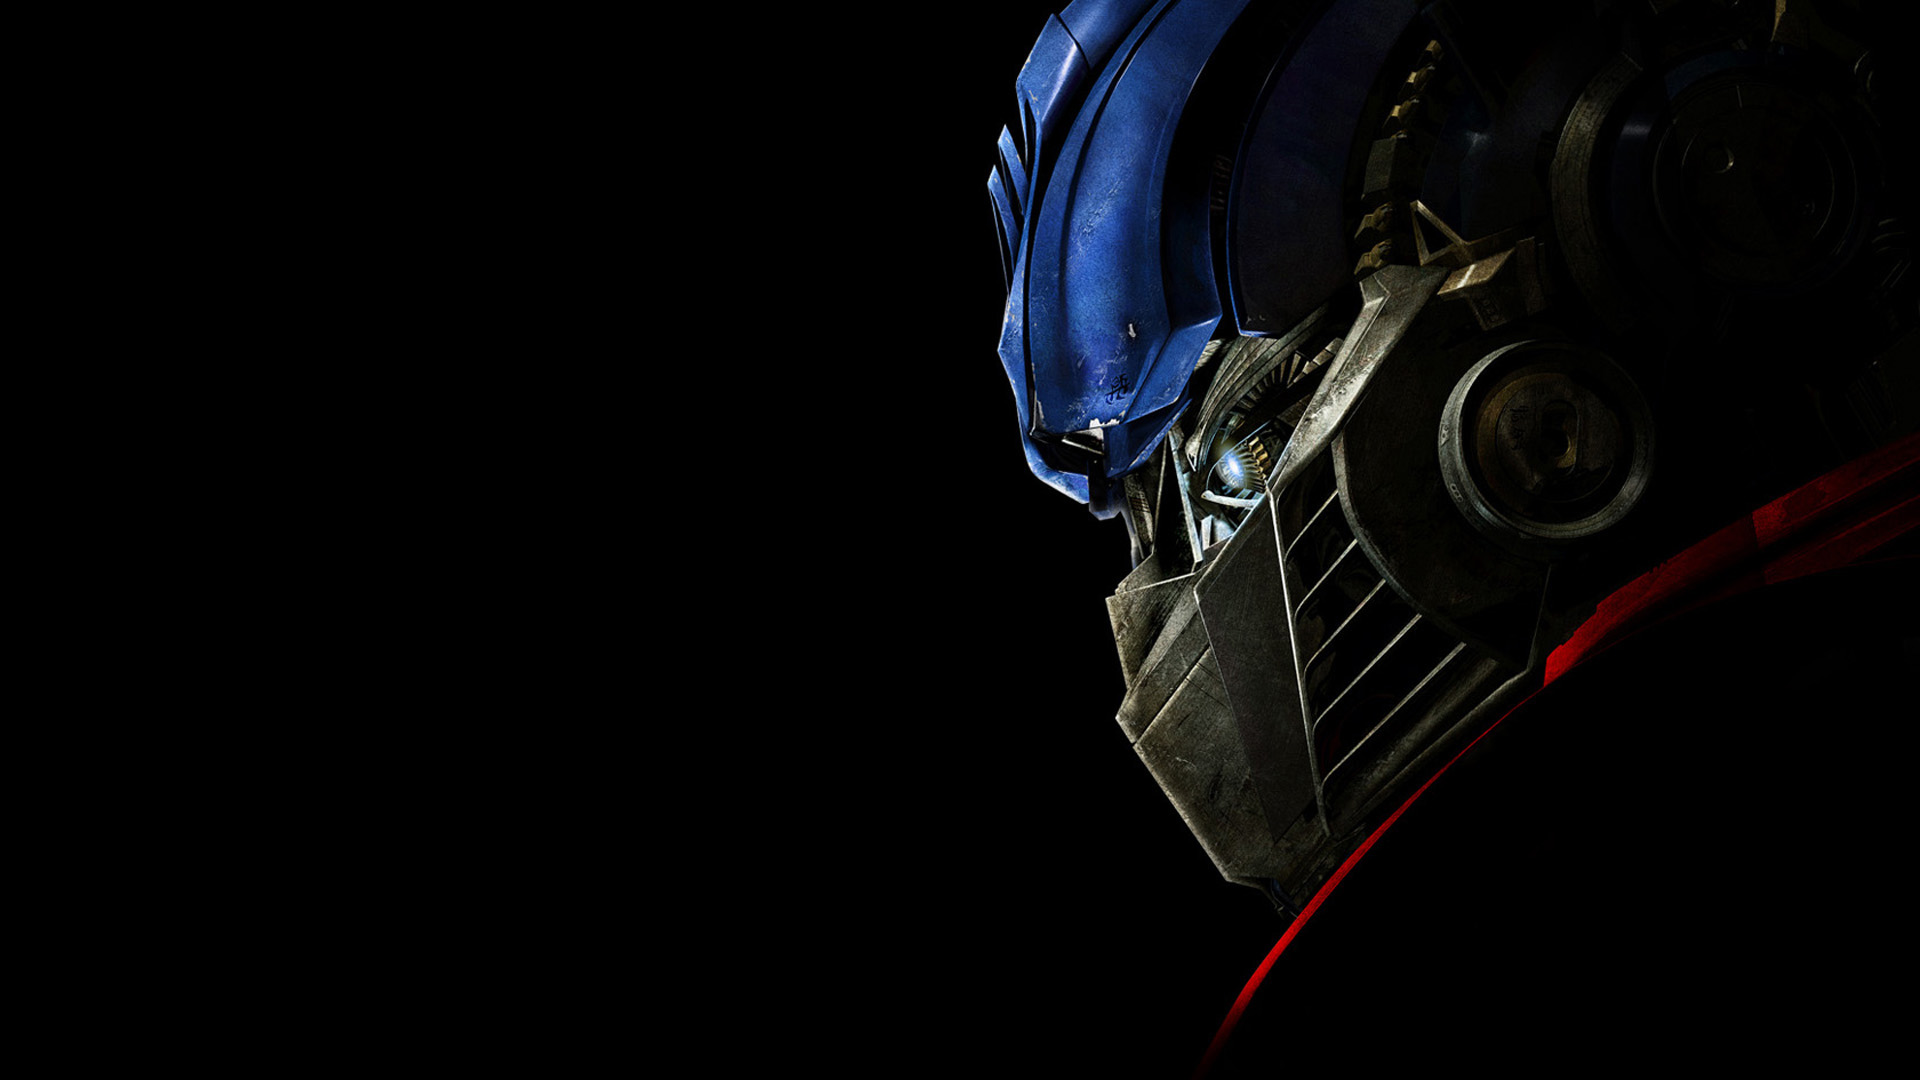 Transformers Wallpaper Hd Widescreen 45 Hd Transformer Wallpapers Backgrounds For Free Download